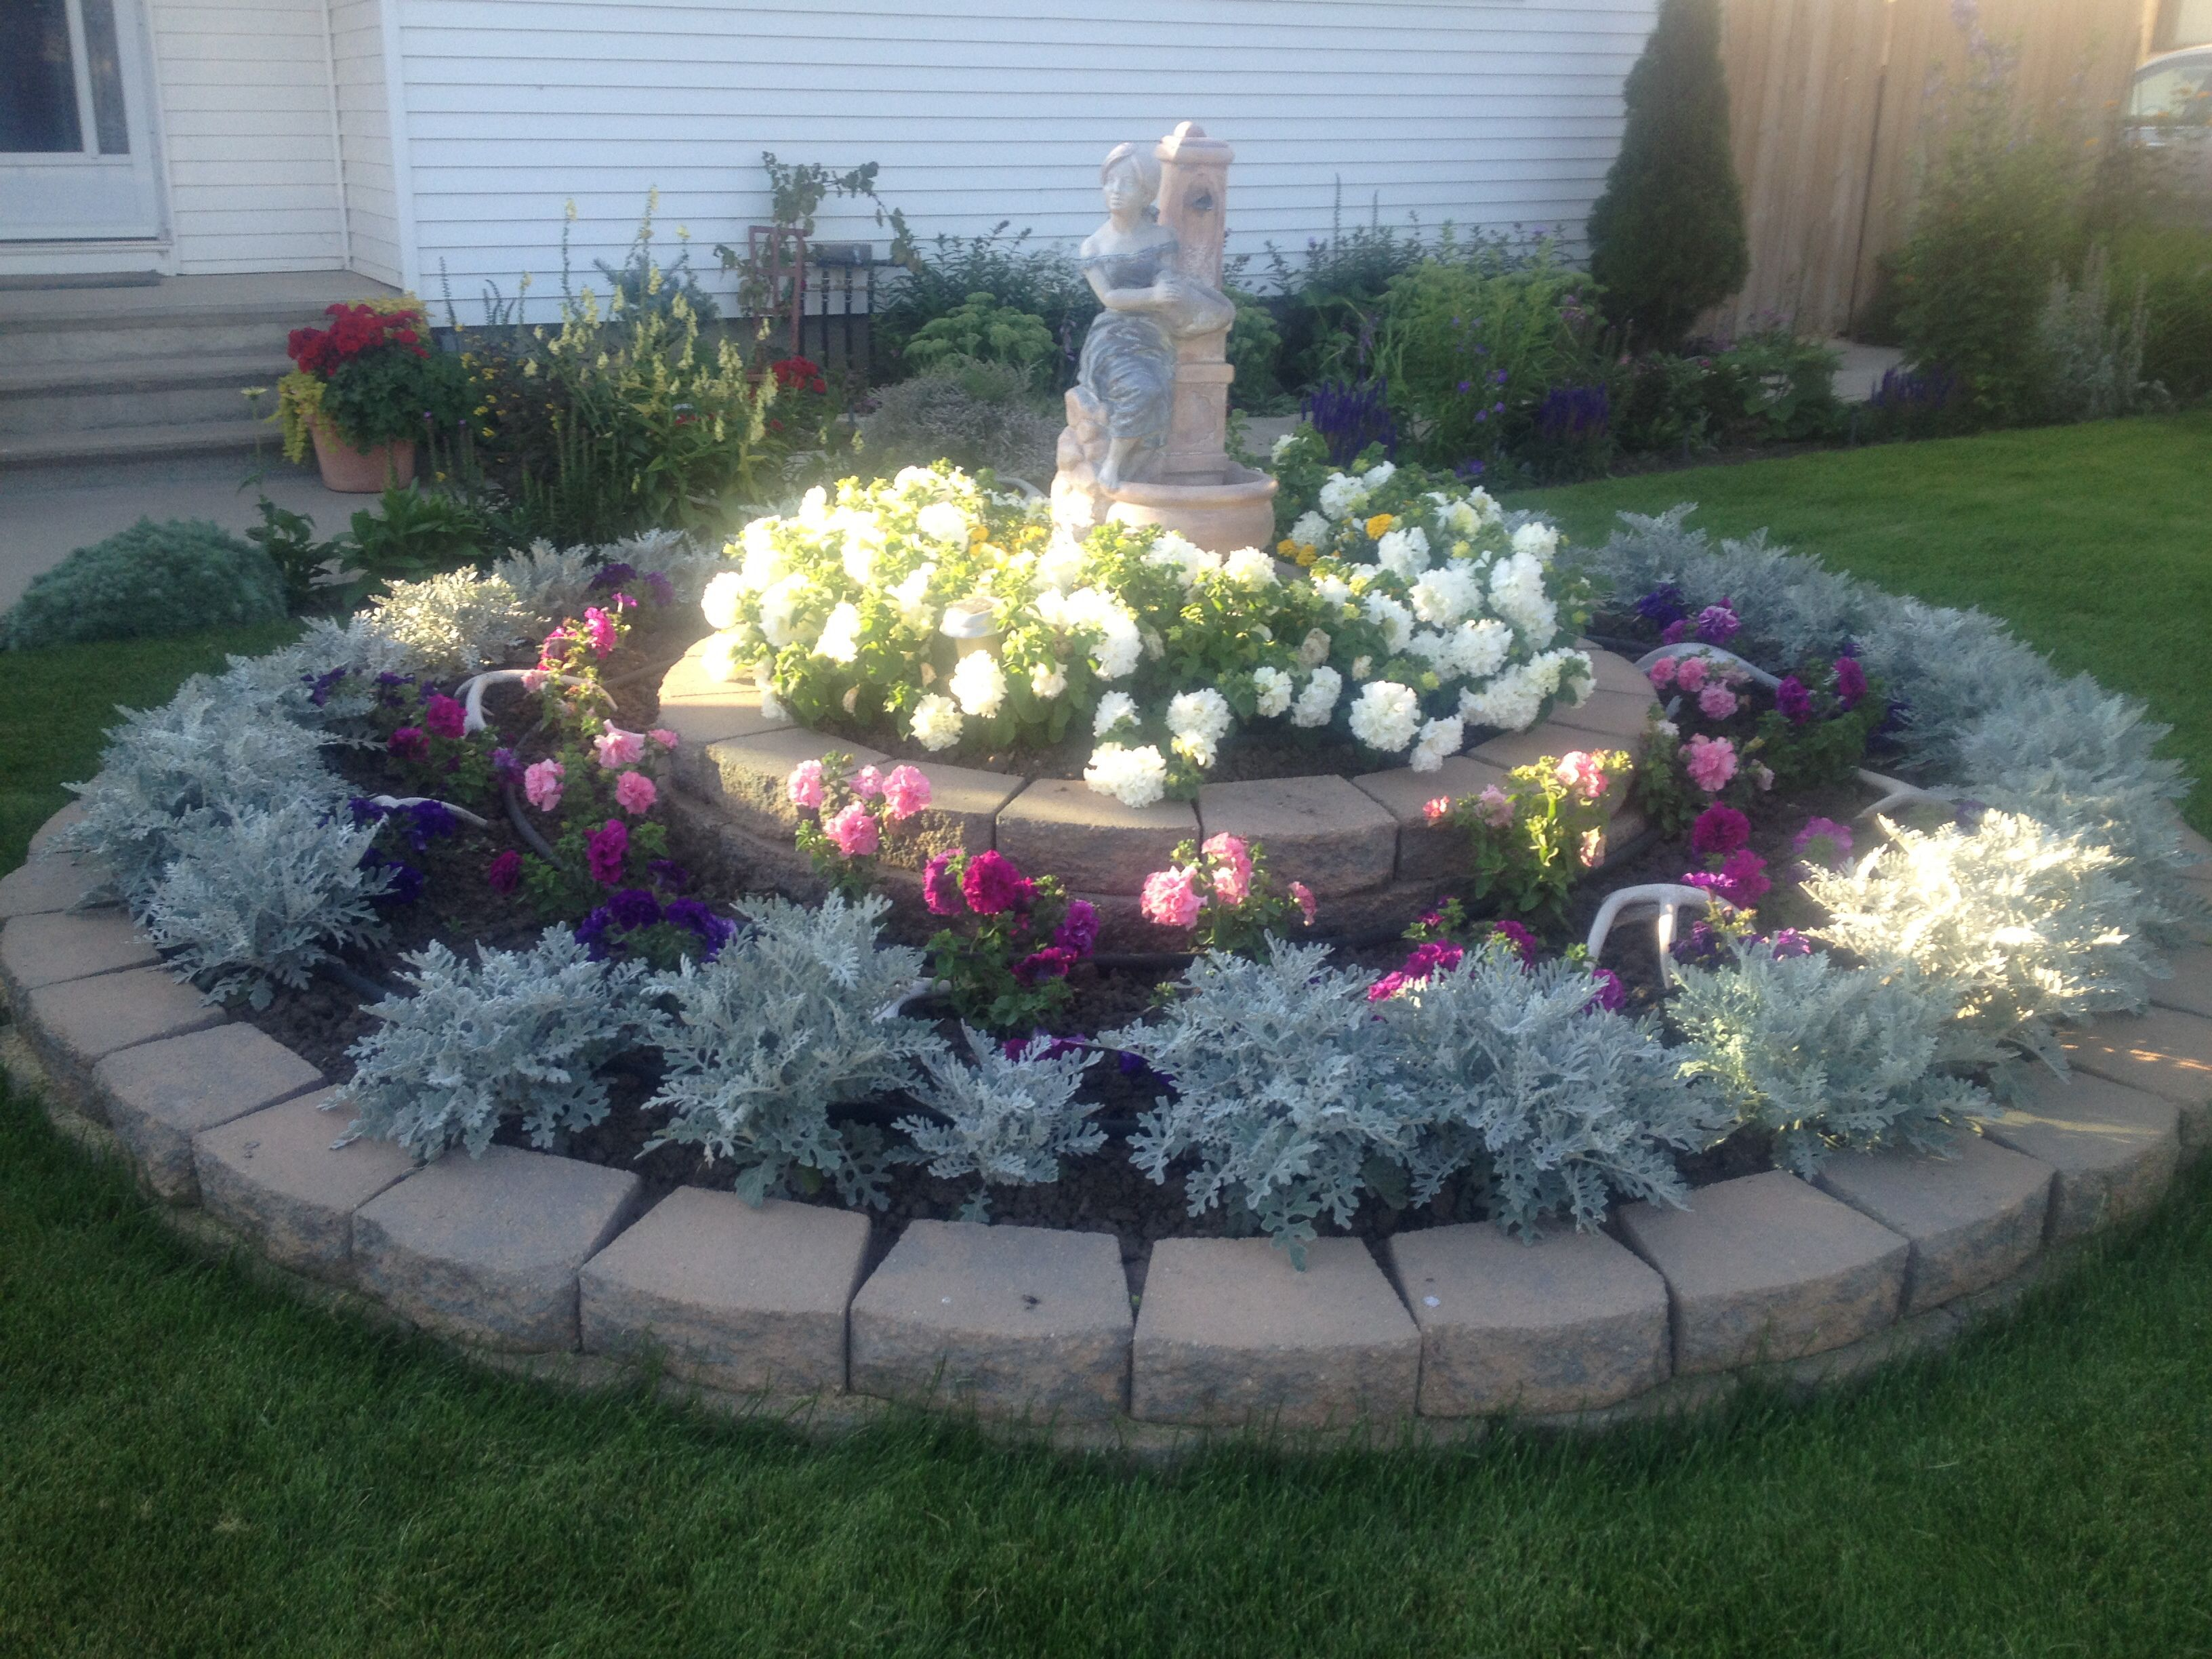 Circle flower garden in front of my house garden decor for Flower ideas for front yard